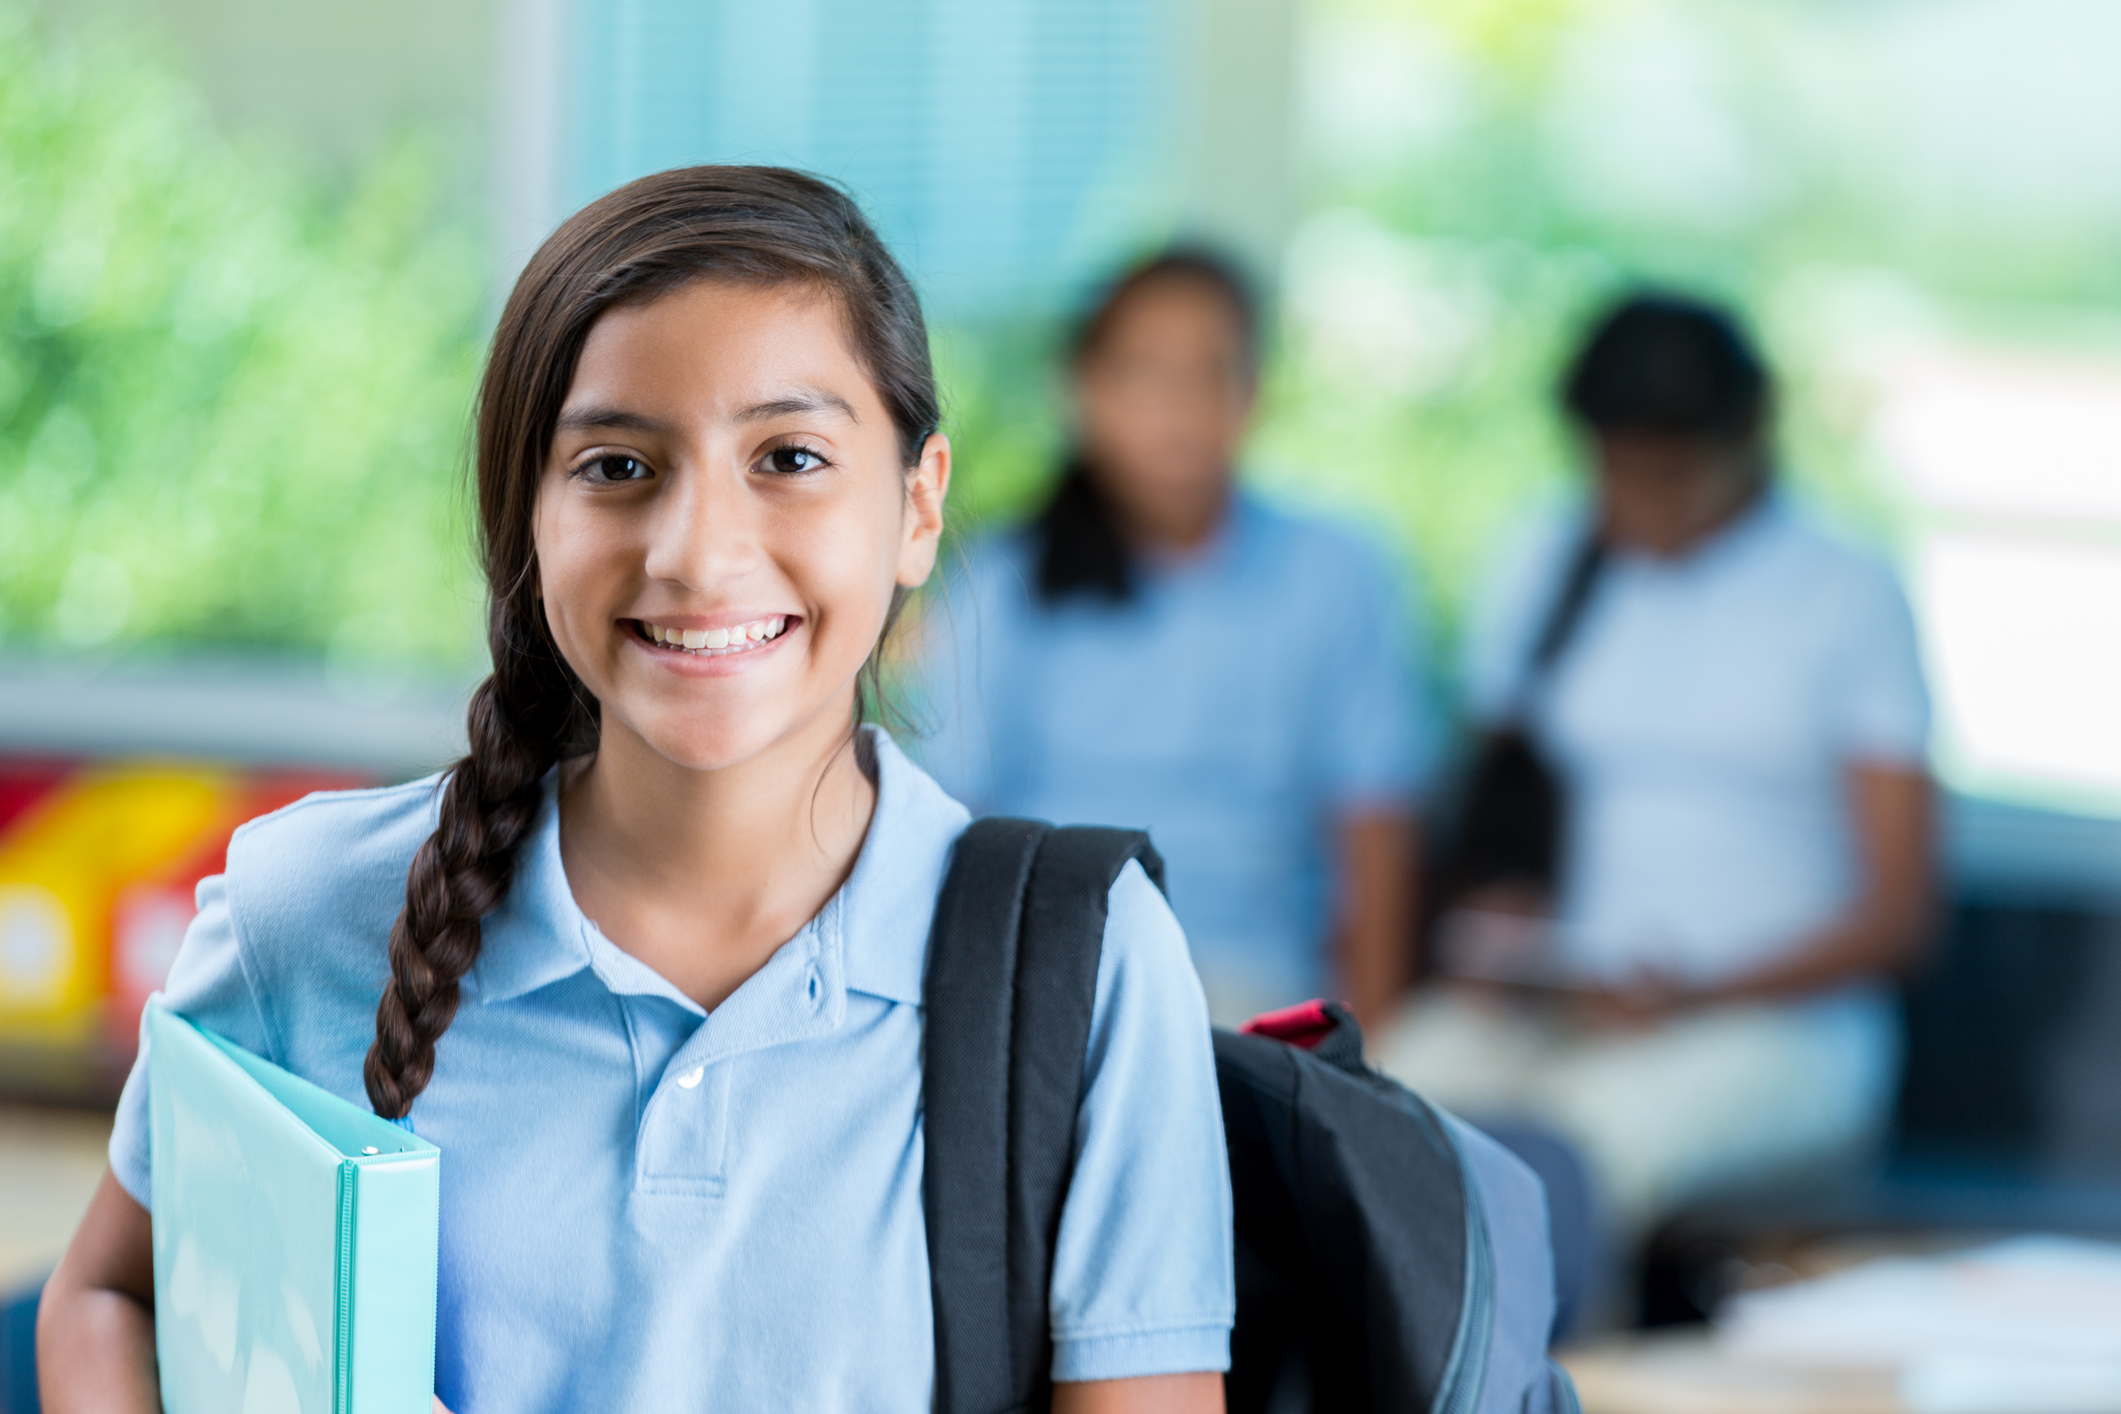 Cheerful Hispanic private middle school student smiles before class. She is standing in her classroom. He has a braid and is wearing a backpack and a school uniform. Students are in the background talking.